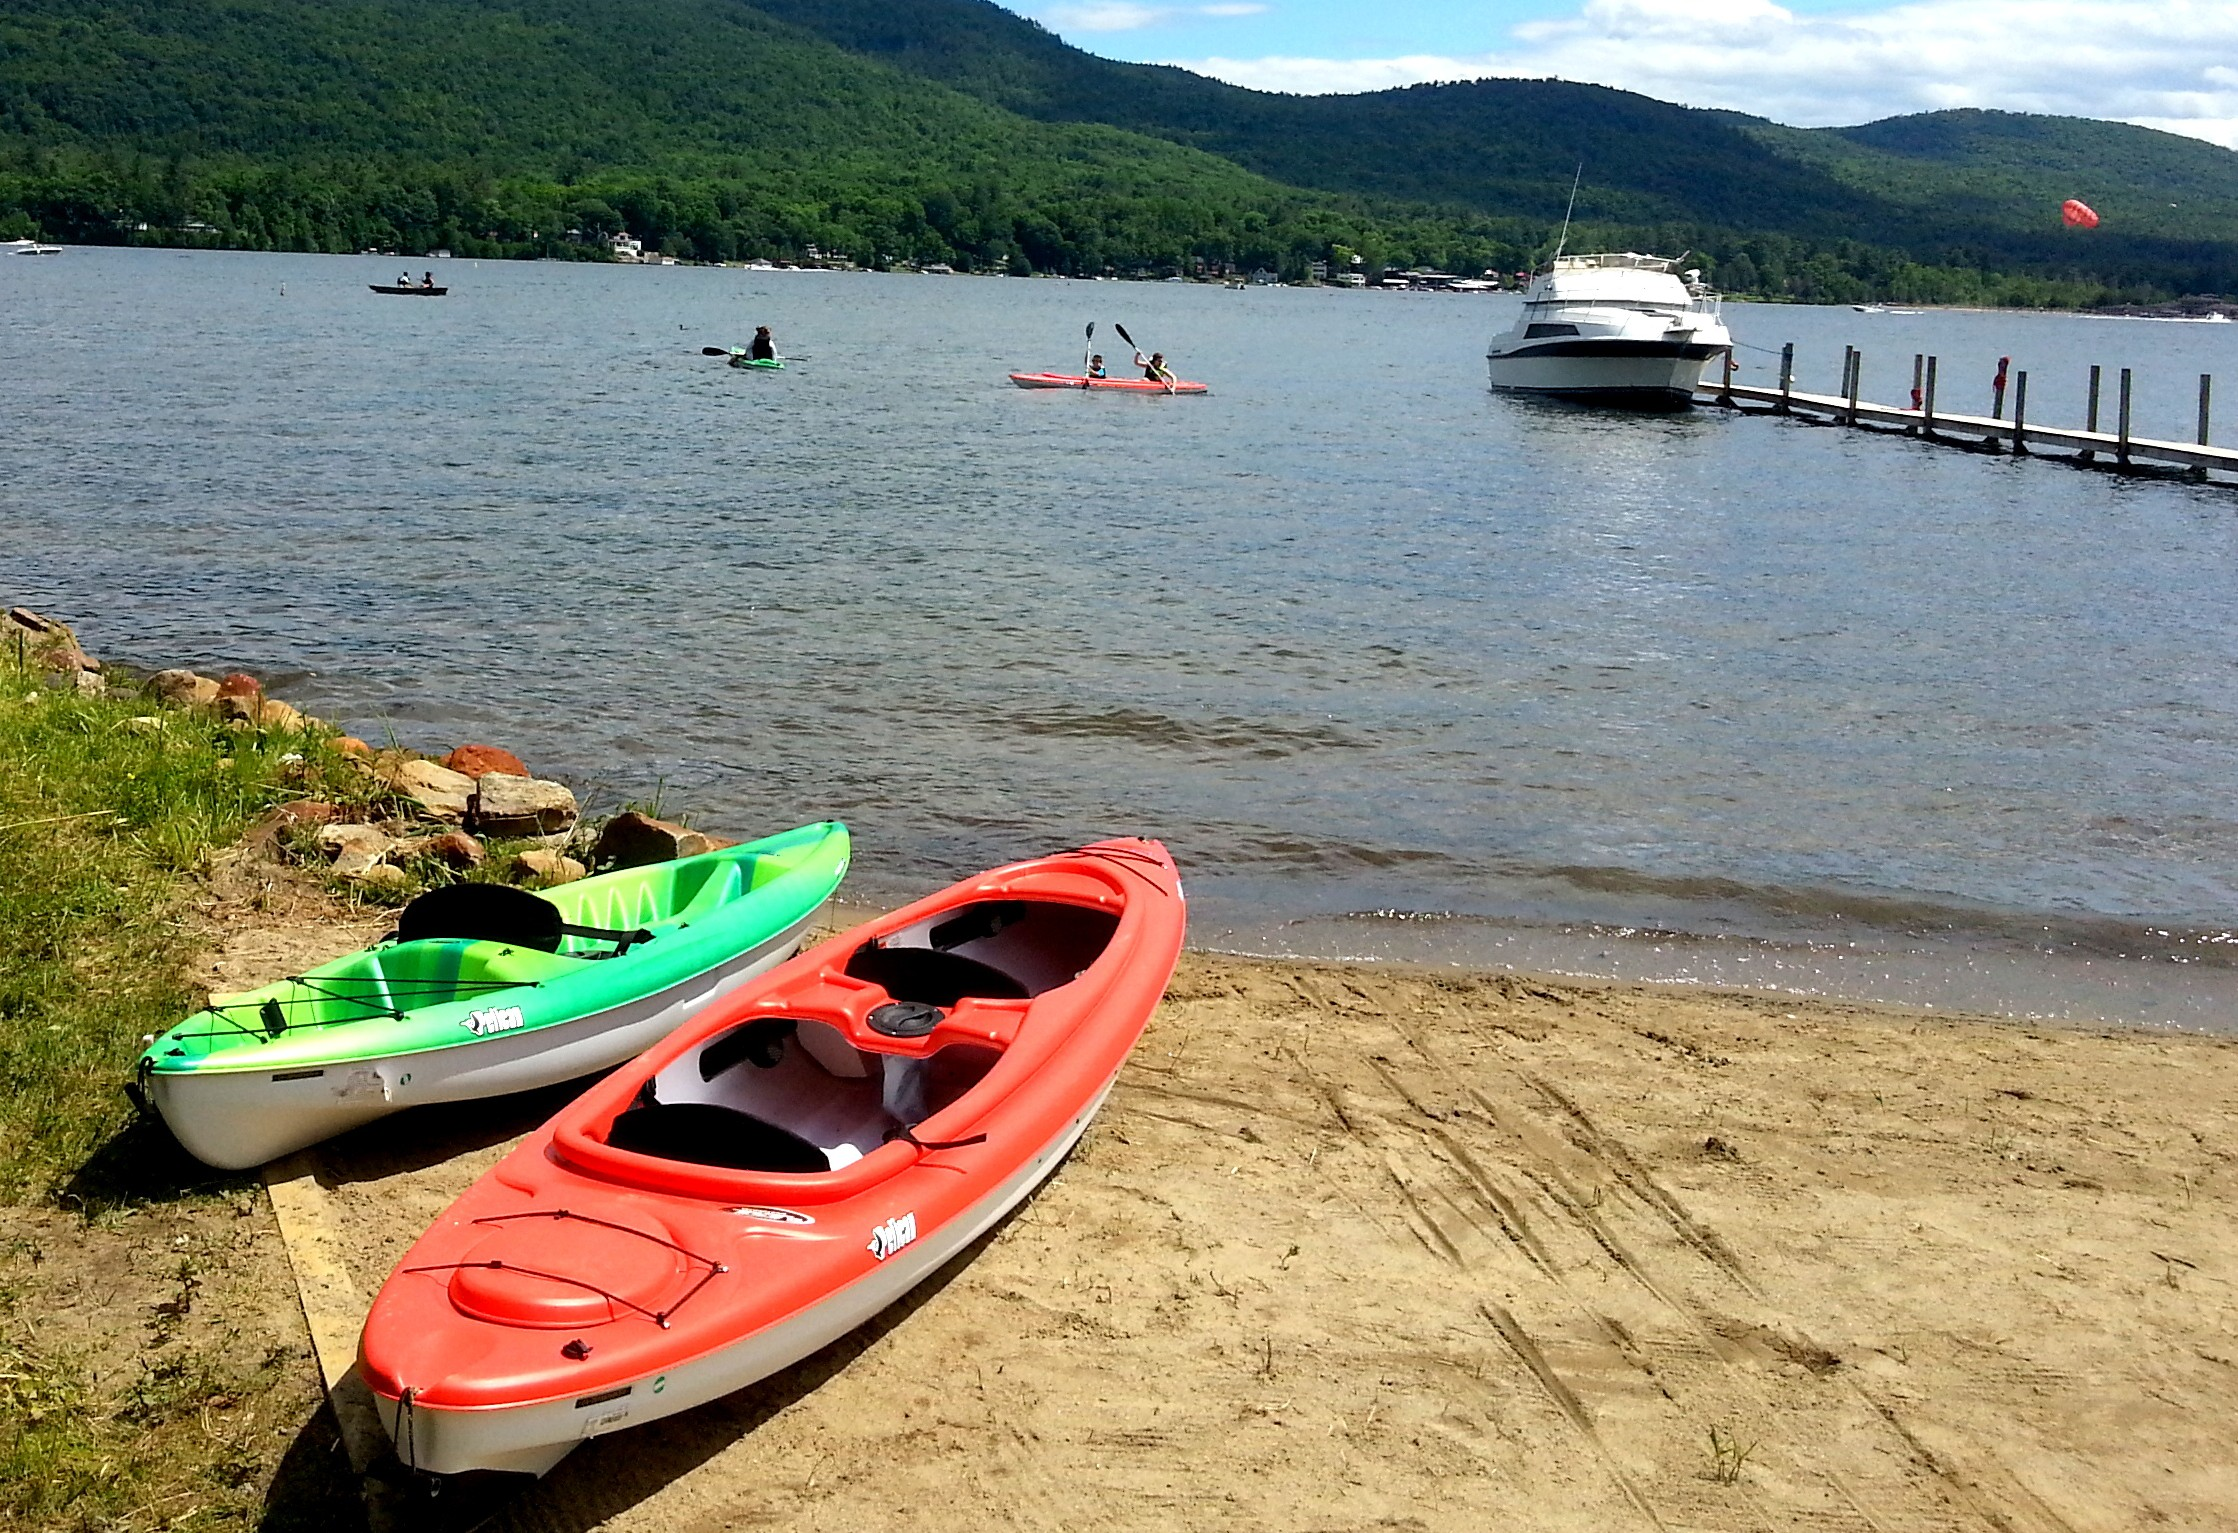 Lake George Ny Resort Offering Activities Including Water